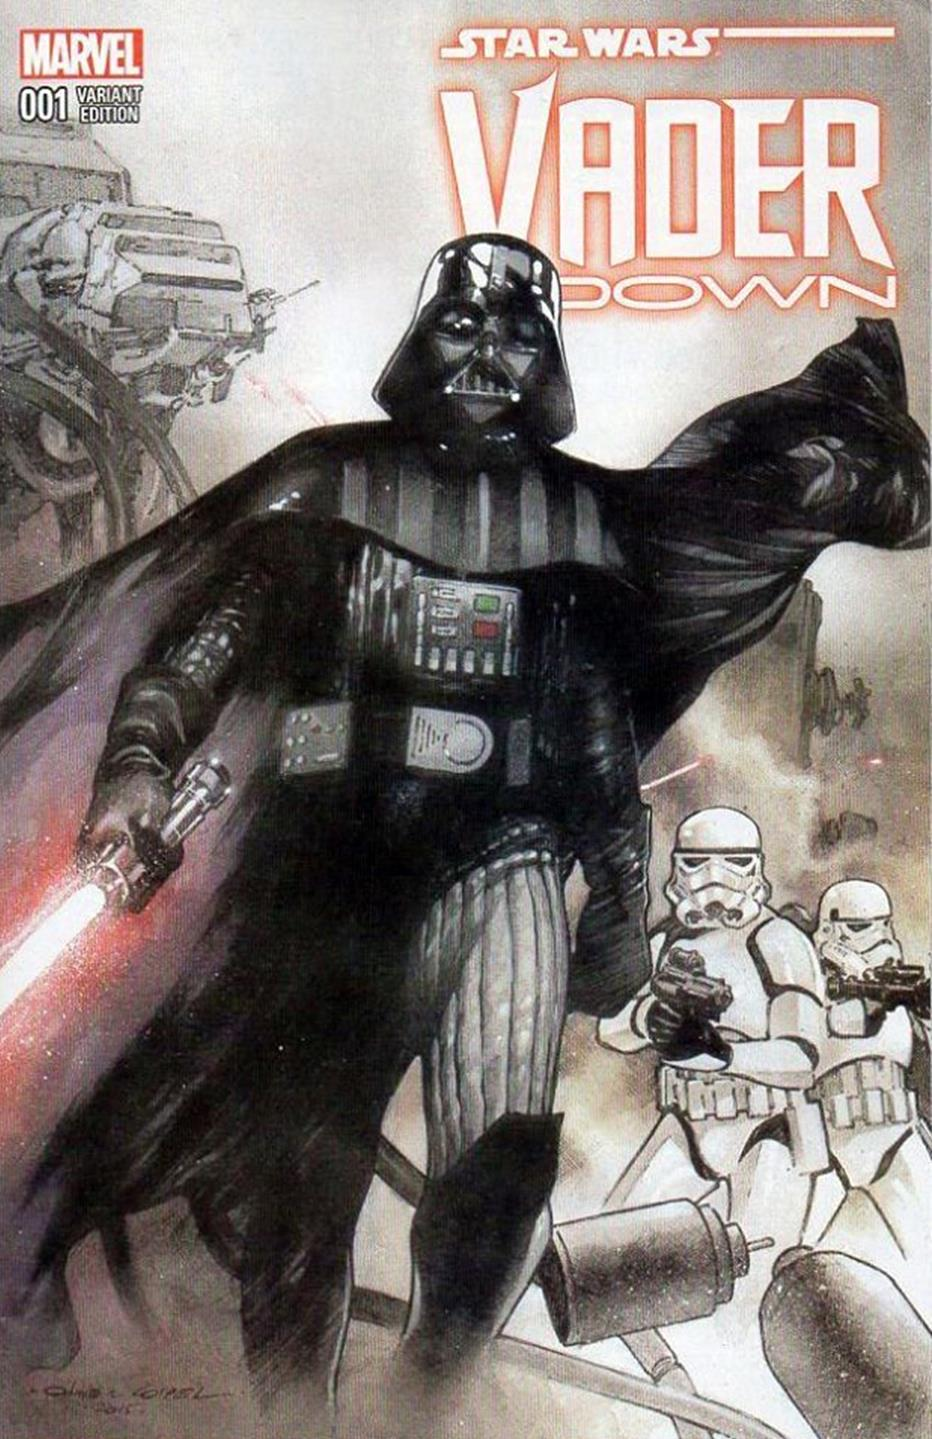 Vader Down #1 (Olivier Coipel Dynamic Forces Variant Cover) (18.11.2015)